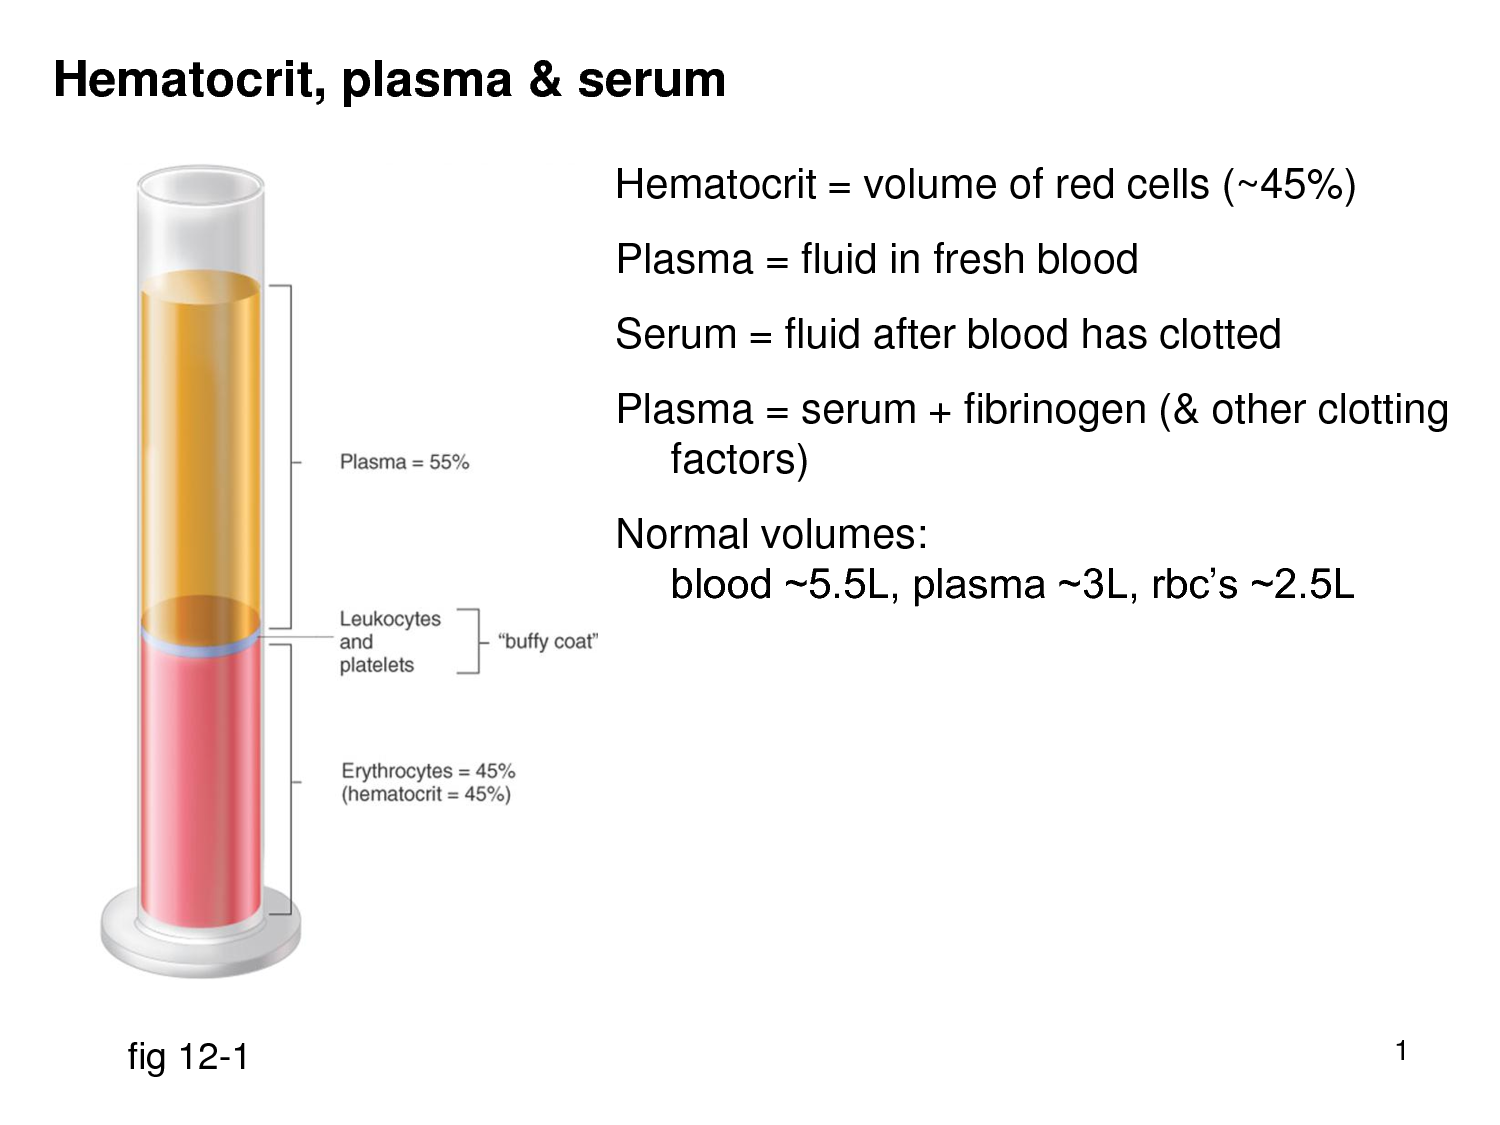 hct, plasma, serum definitions | heme/onc | phlebotomy, blood